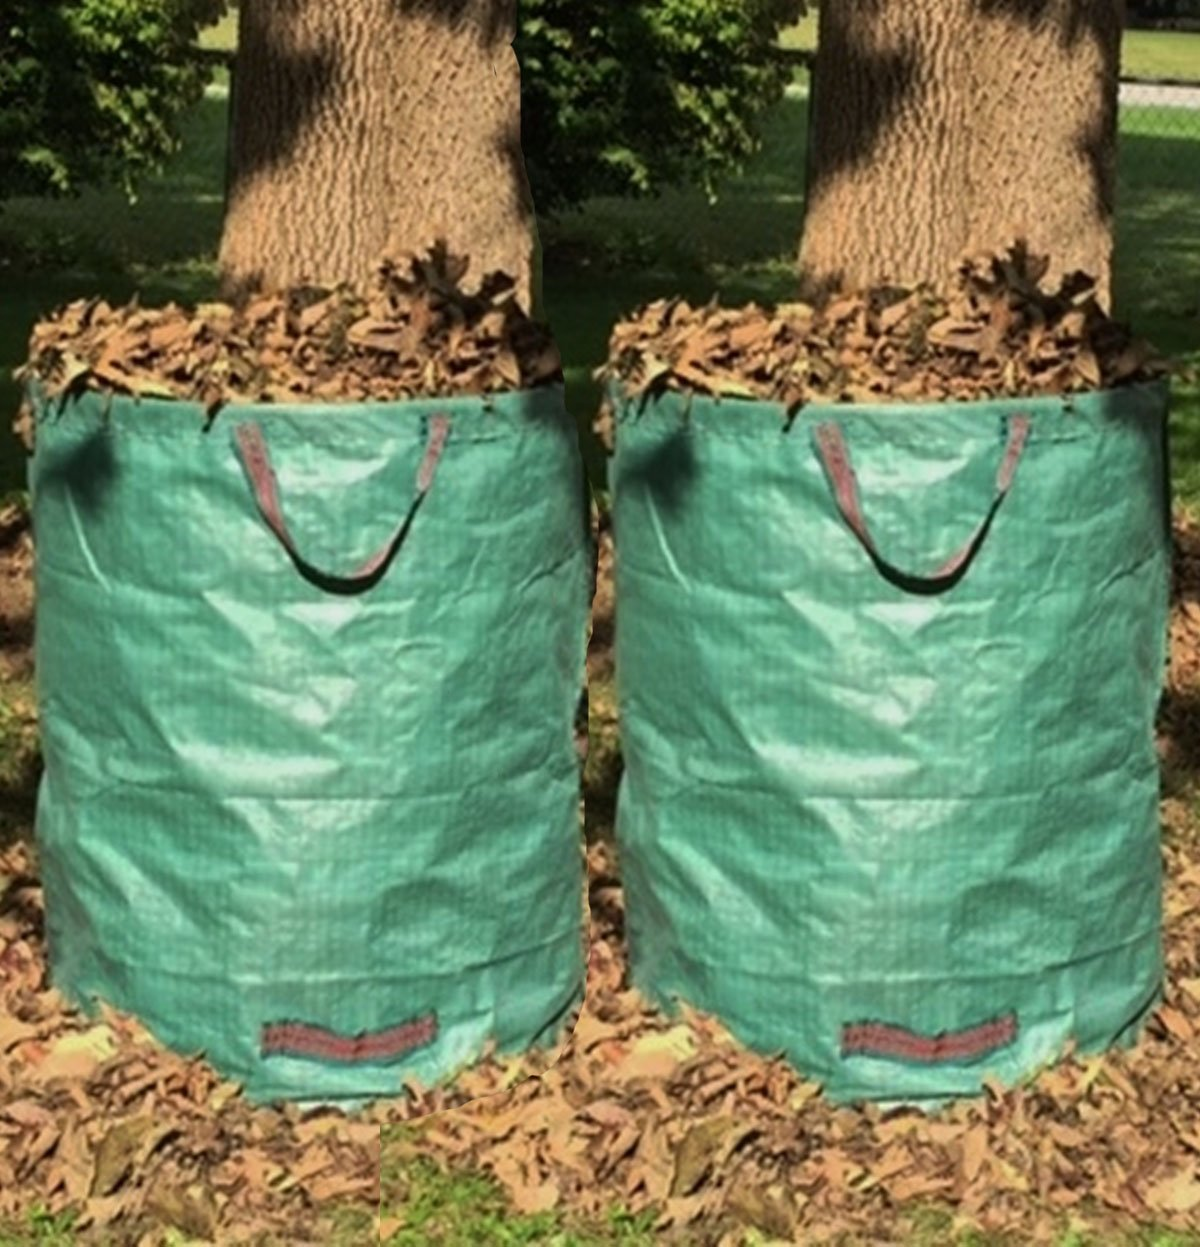 Go-GreenGardening 2-Pack Large Reusable Lawn, Leaf & Garden Waste Bag Collapsible- 72 Gallon by Go-GreenGardening